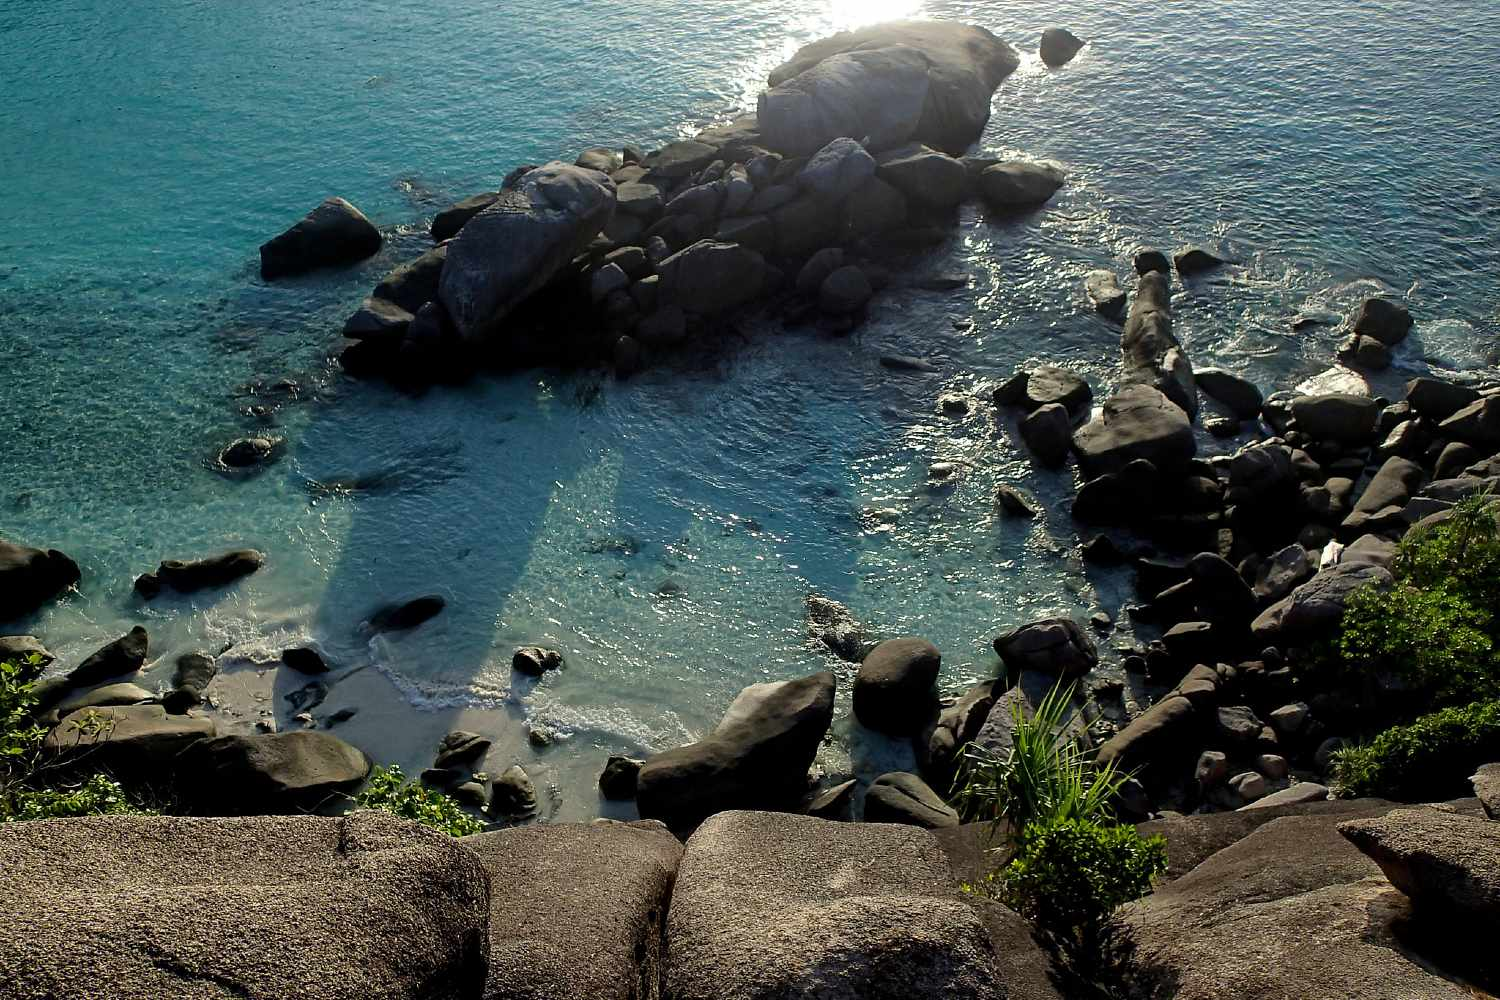 Rocks in the clear water during sunset